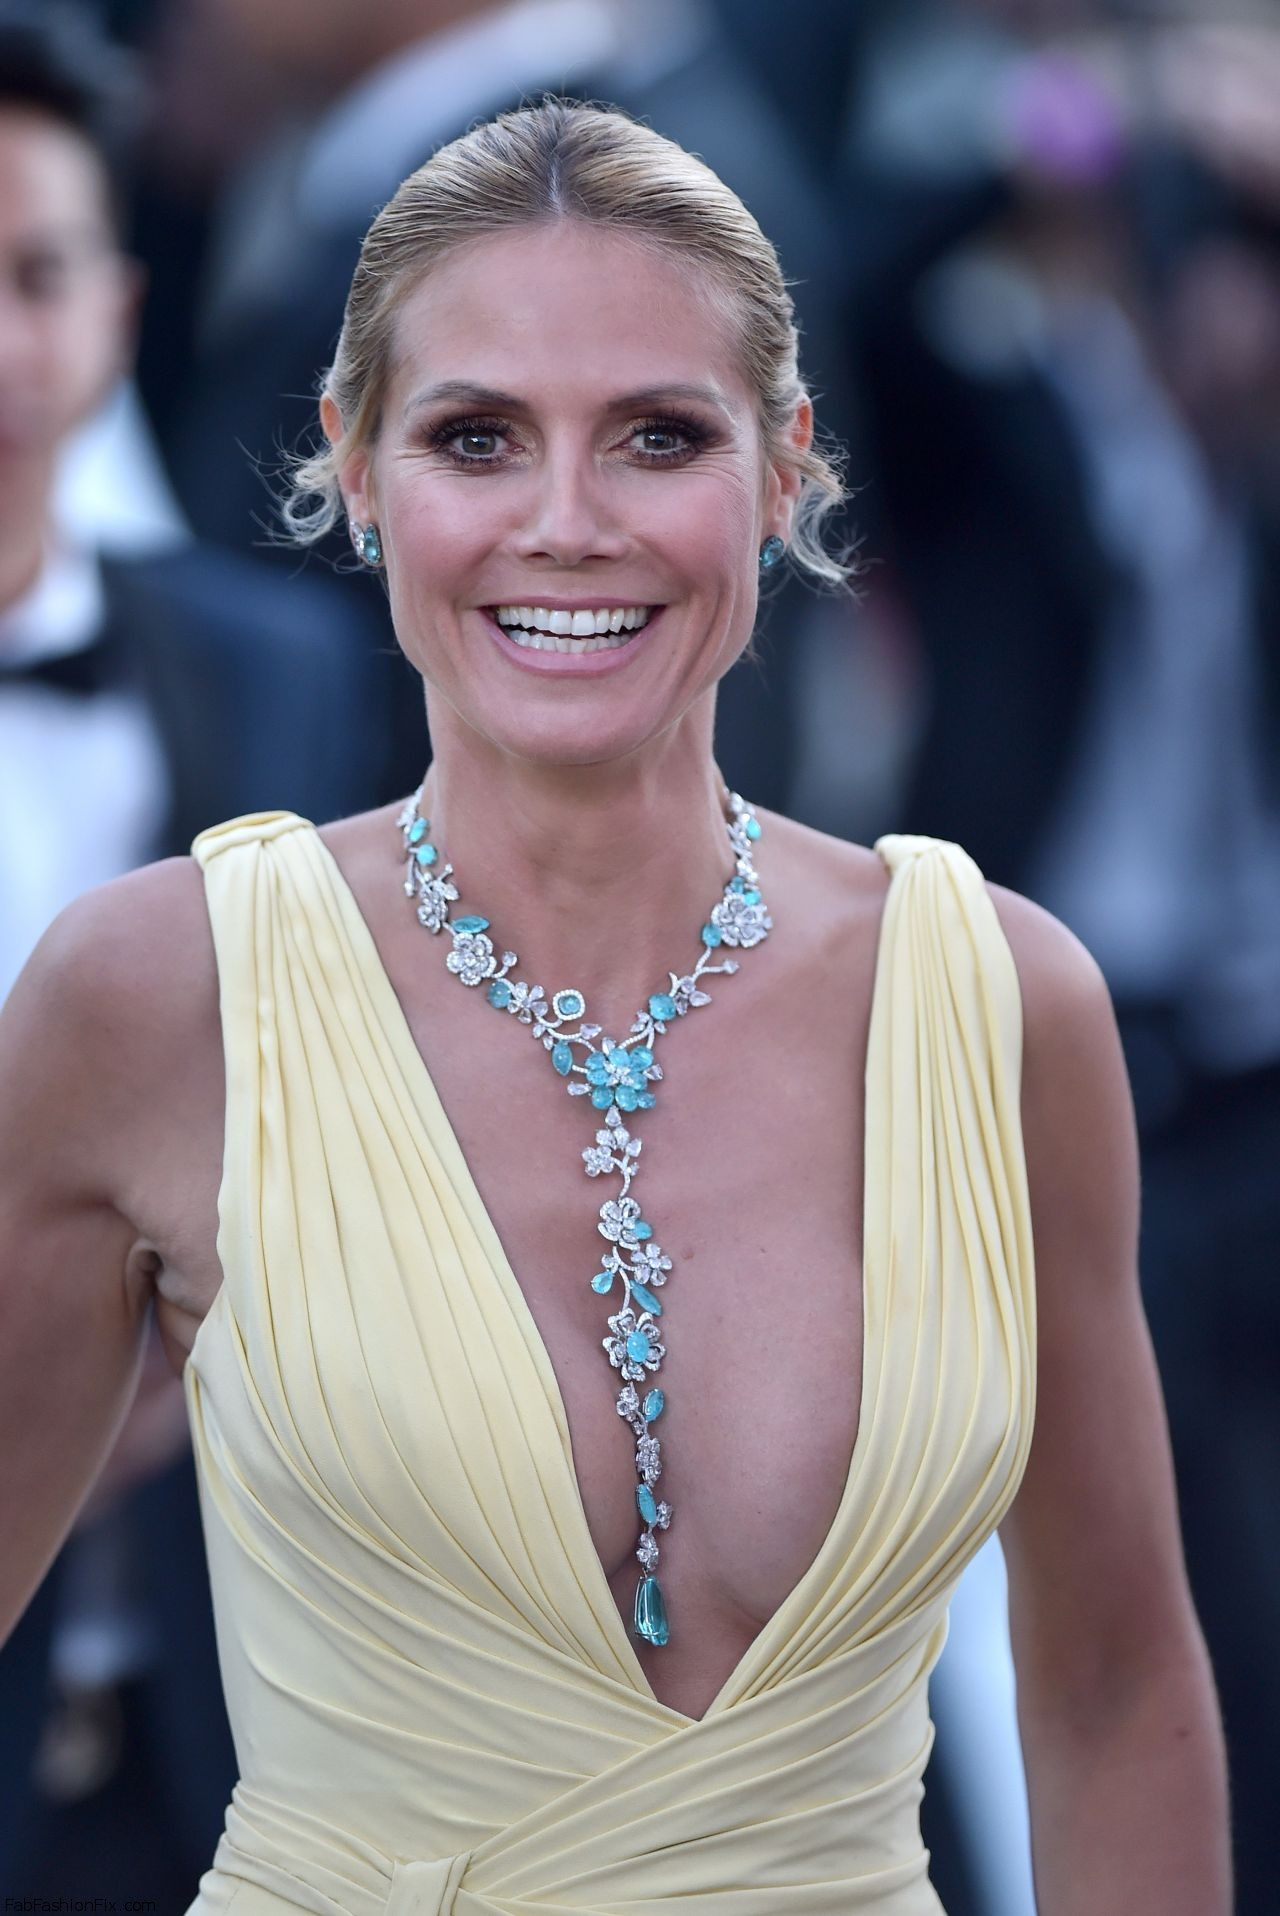 heidi-klum-amfar-s-cinema-against-aids-gala-in-cap-d-antibes-france-5-19-2016-15